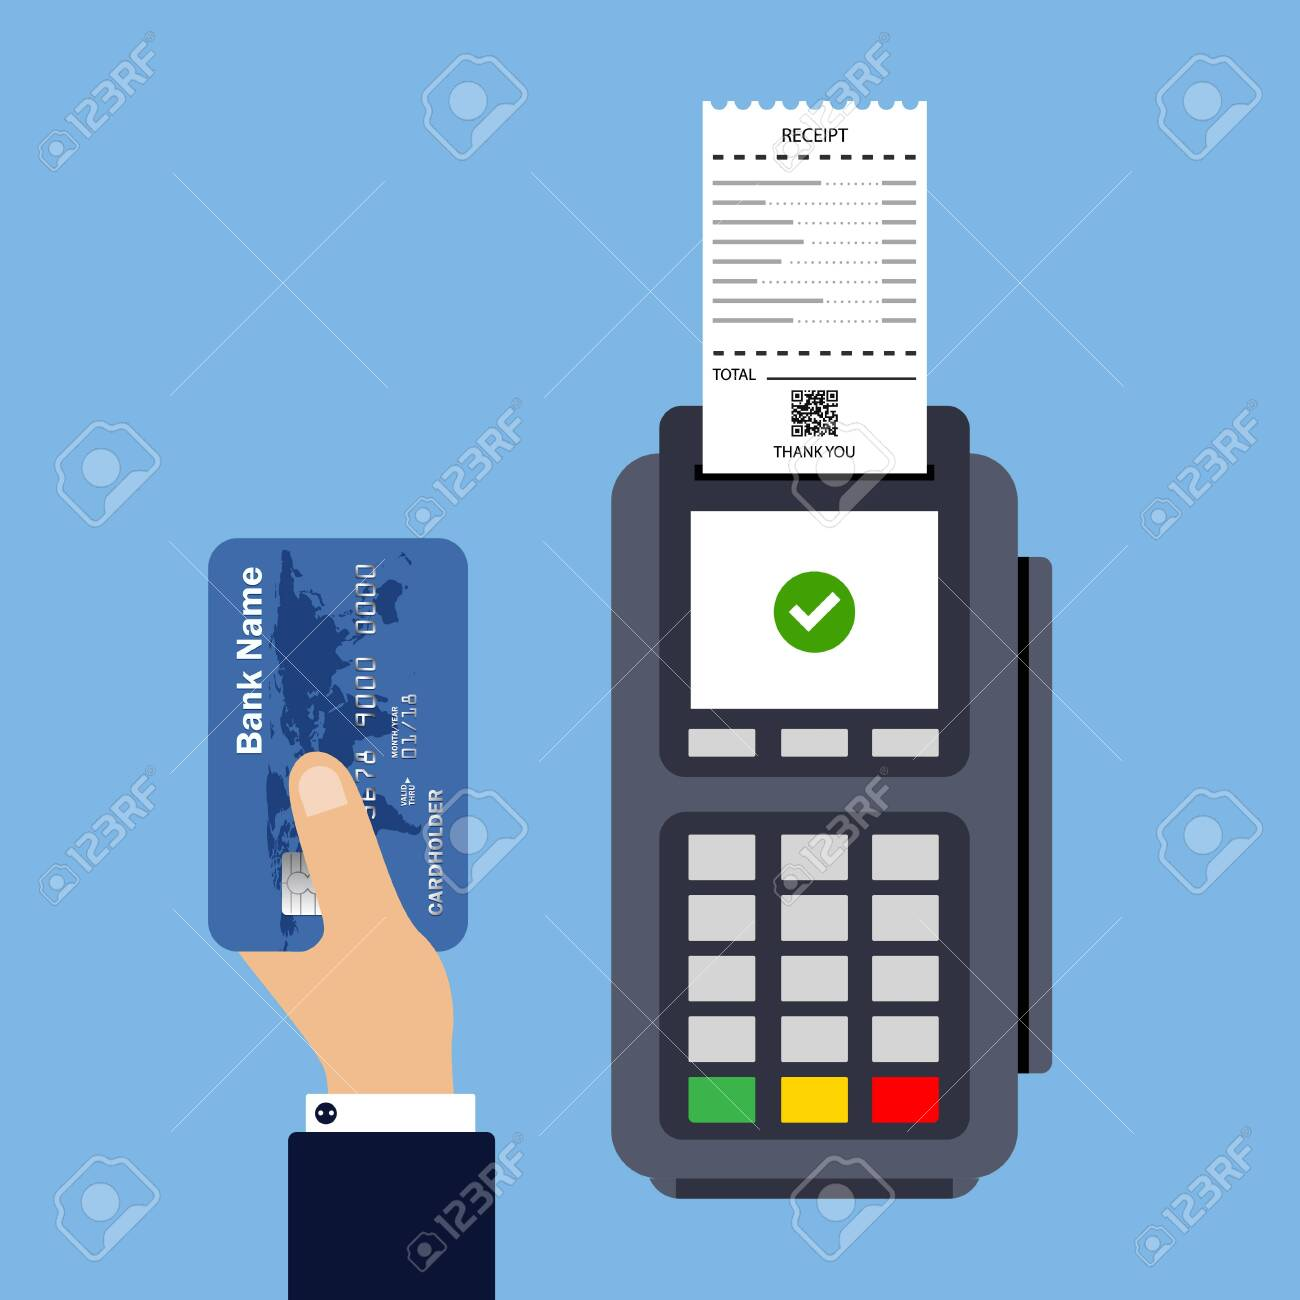 Flat design of POS terminal usage concept. Payment by card concept. Vector illustration. Isolated. - 145238346